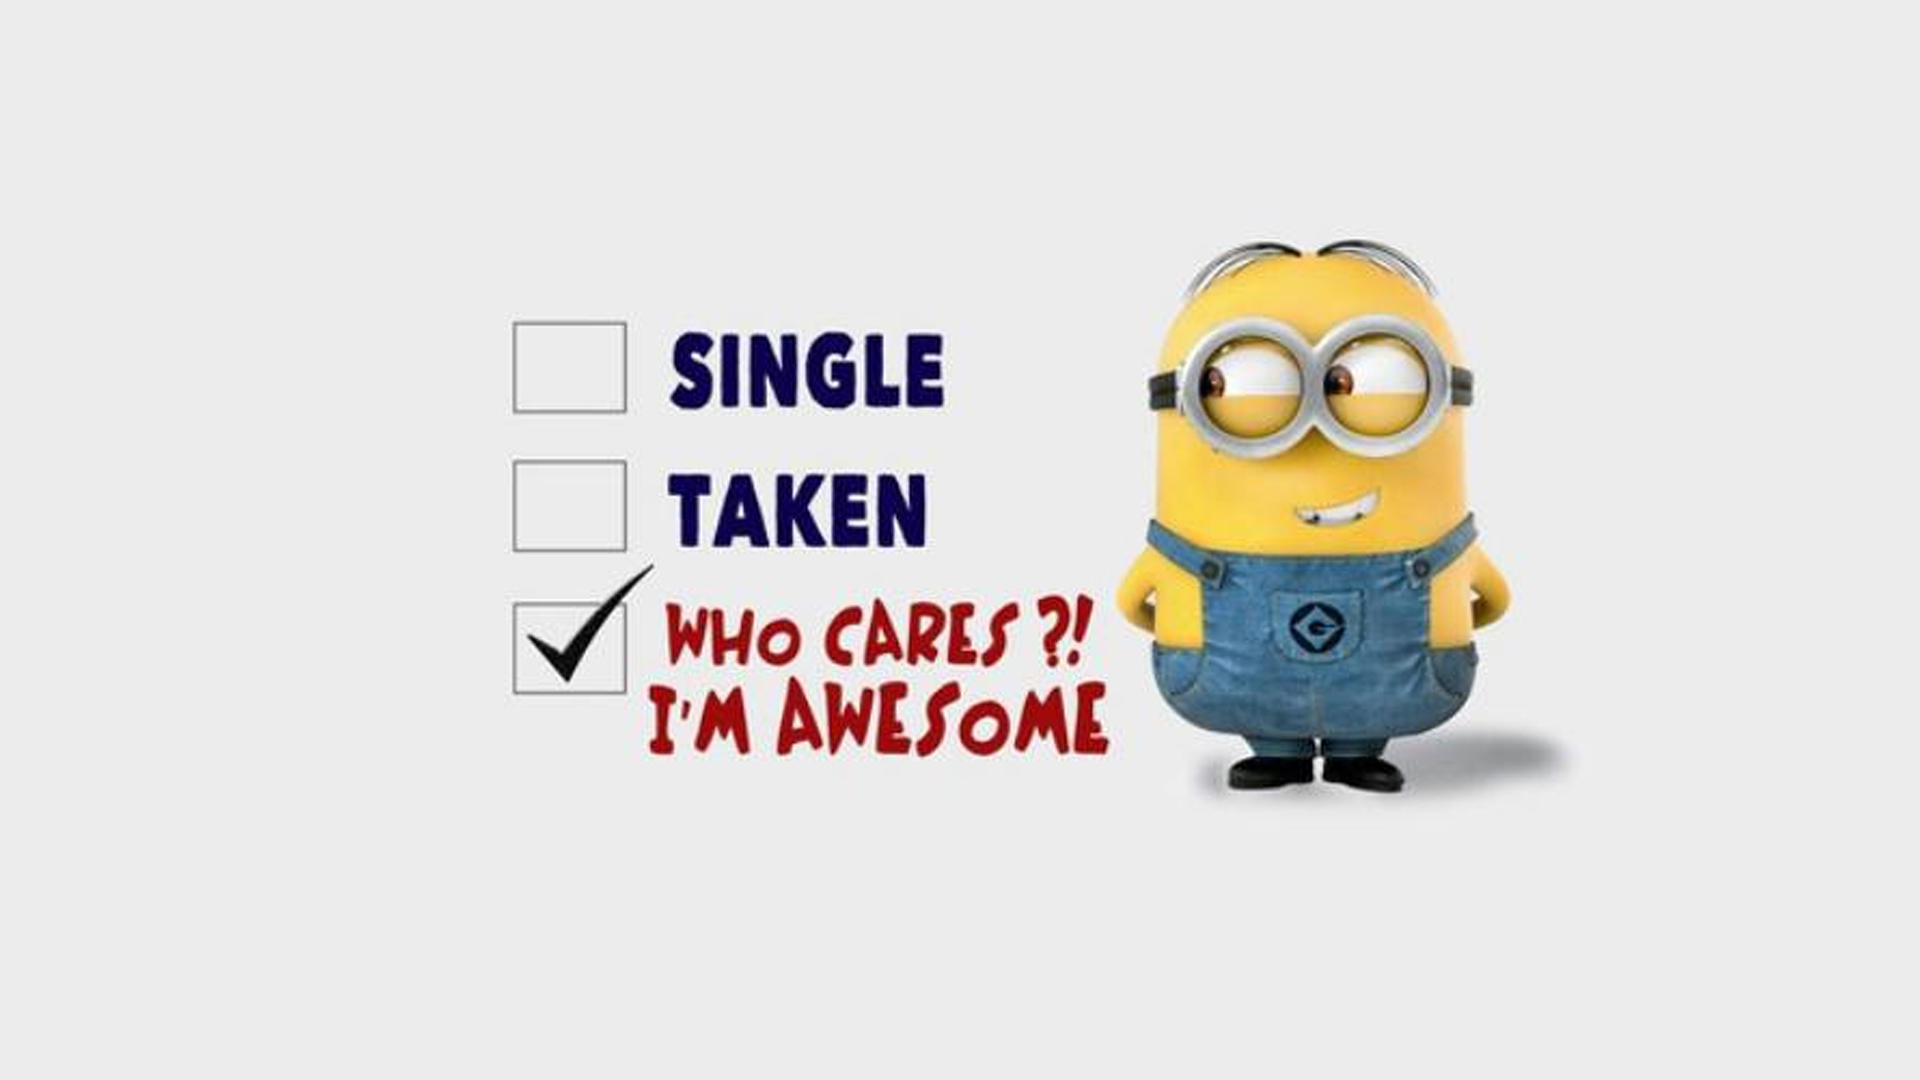 Minions Love Quotes Wallpaper : Minions (2015): animated film hd wallpapers Volganga